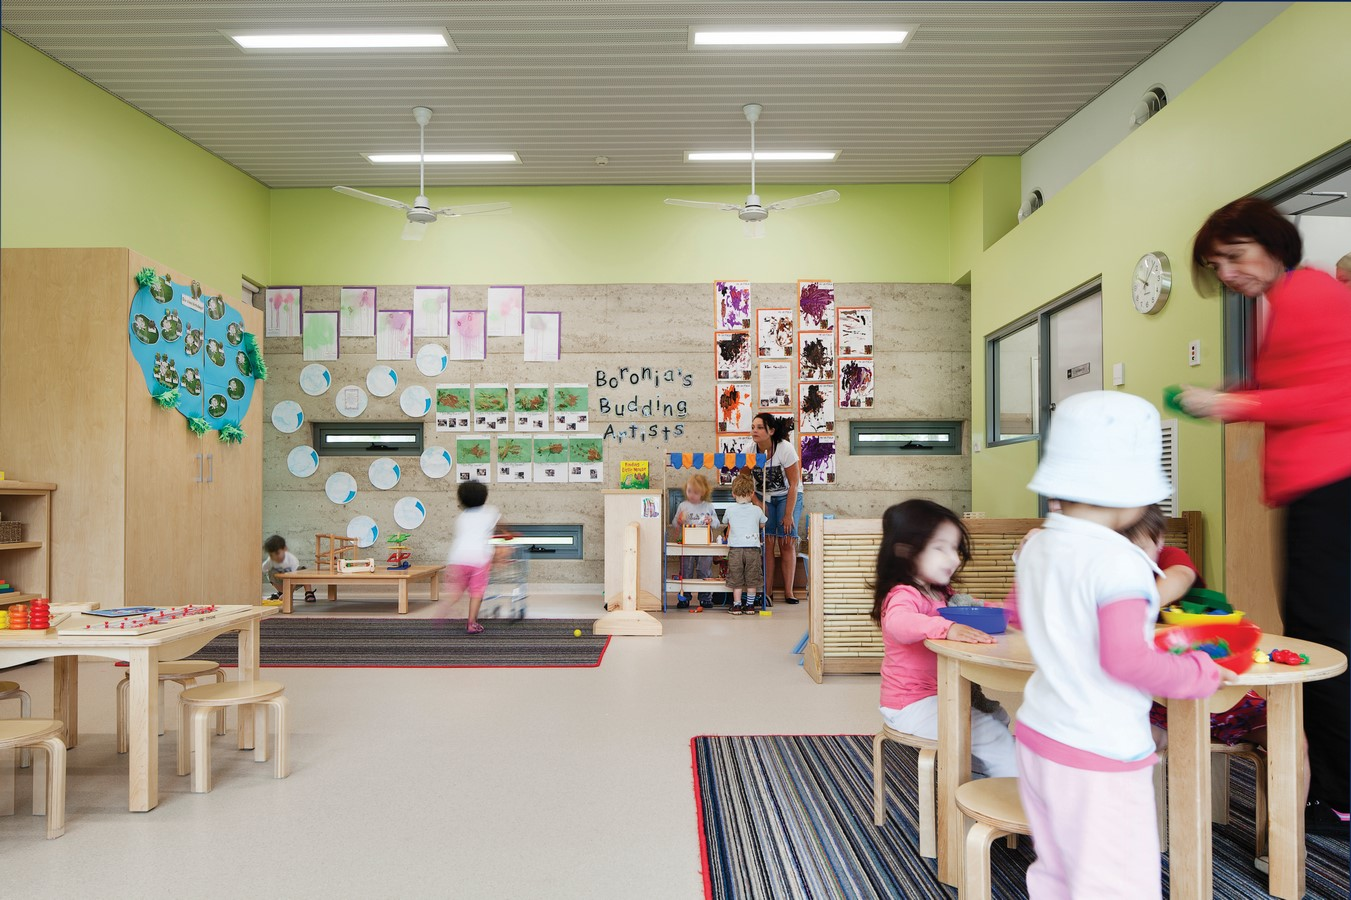 University of Western Australia Early Learning Centre by Hames Sharley - Sheet1